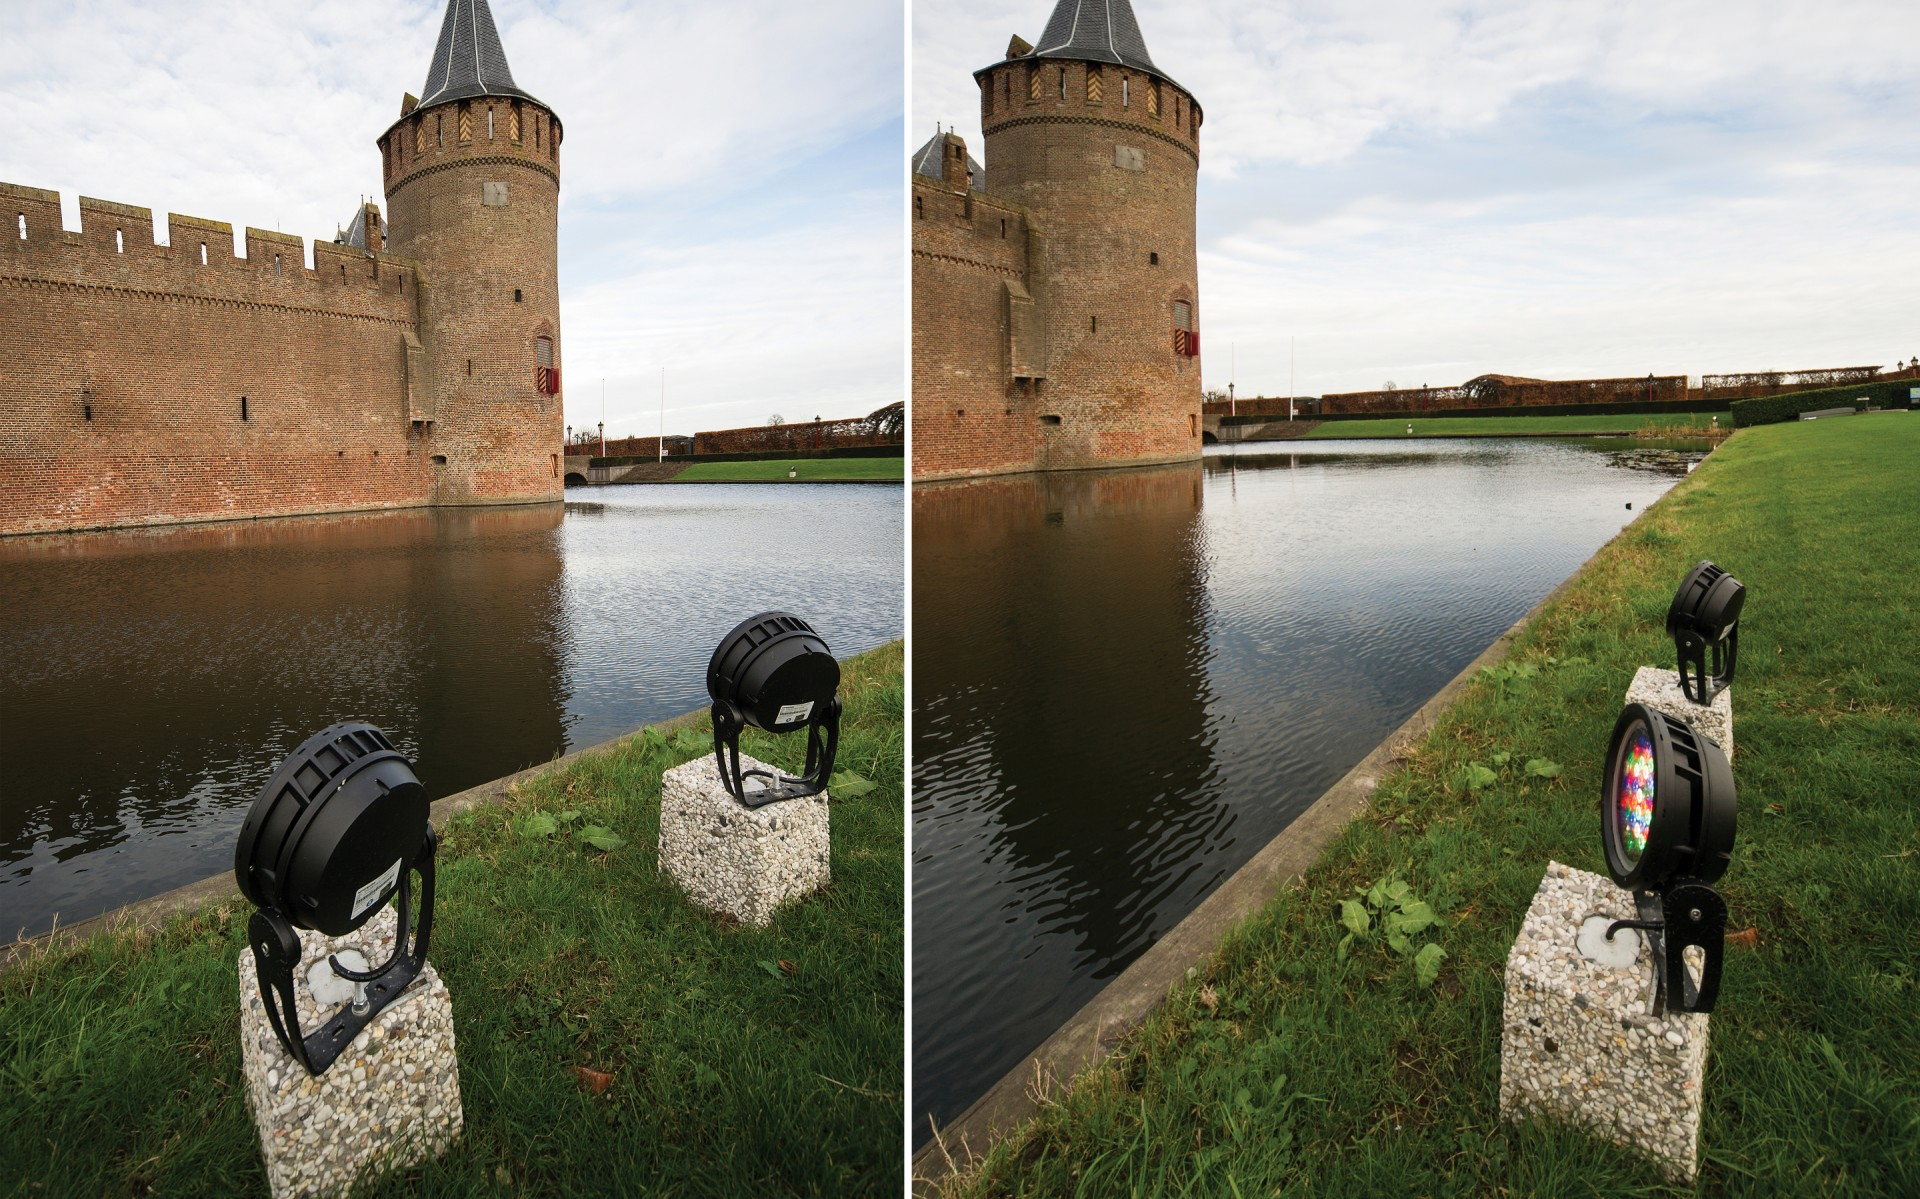 Installed across the moat and aimed at the castle's facade, the 50W Lumenbeam luminaires cut power by 80 per cent, reducing maintenance at a stroke.